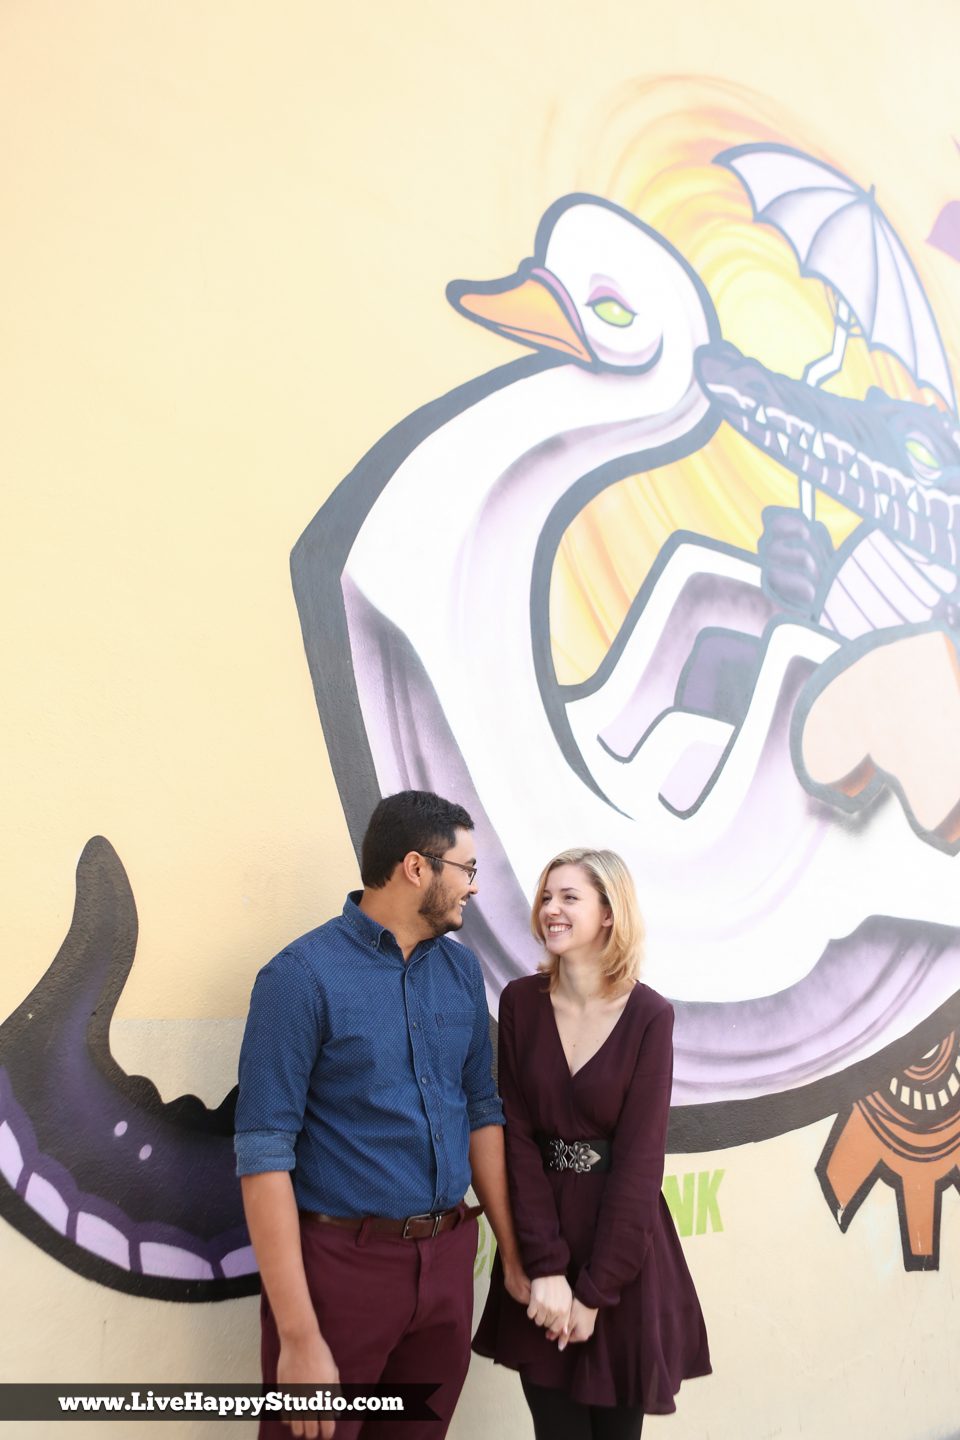 www.livehappystudio.com-church-street-engagement-session-photographer-orlando-central-florida-wedding-photographer-graffiti-wall-1.jpg